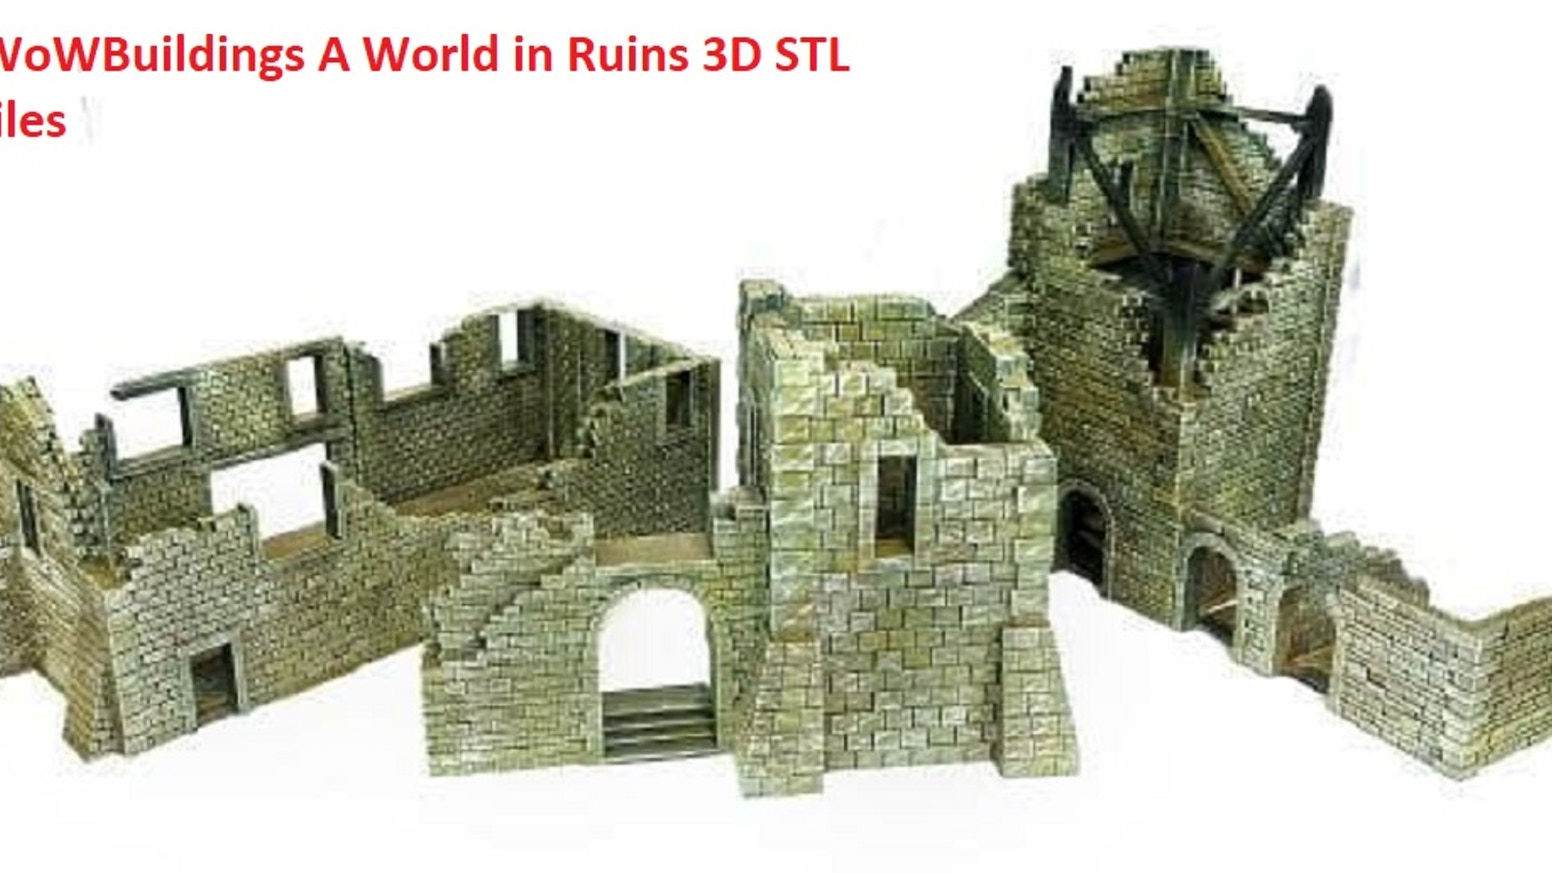 WOWBuildings A World In Ruins 3D Printing STL files